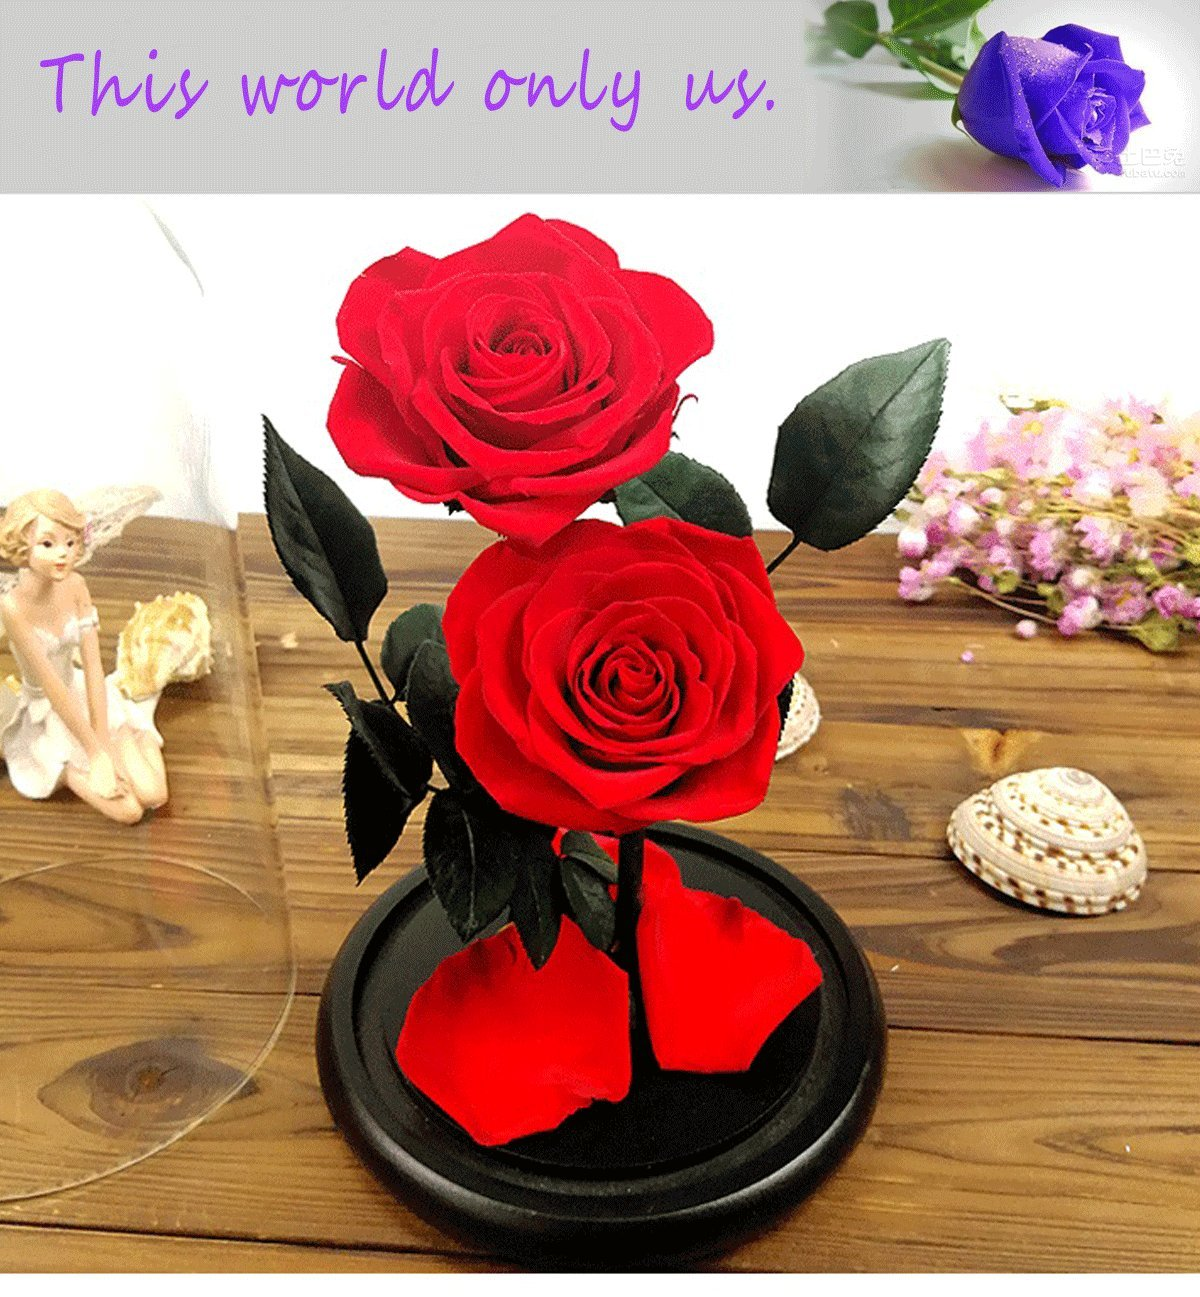 Baobab's wish Preserved Fresh Flower,Enchanted Rose,Natural Eternal Life Rose in Glass Dome Cover with Gift Box for Valentine's Day, Mother's Day, Anniversary, Birthday, Wedding (Royal Blue) Mother' s Day feiliya